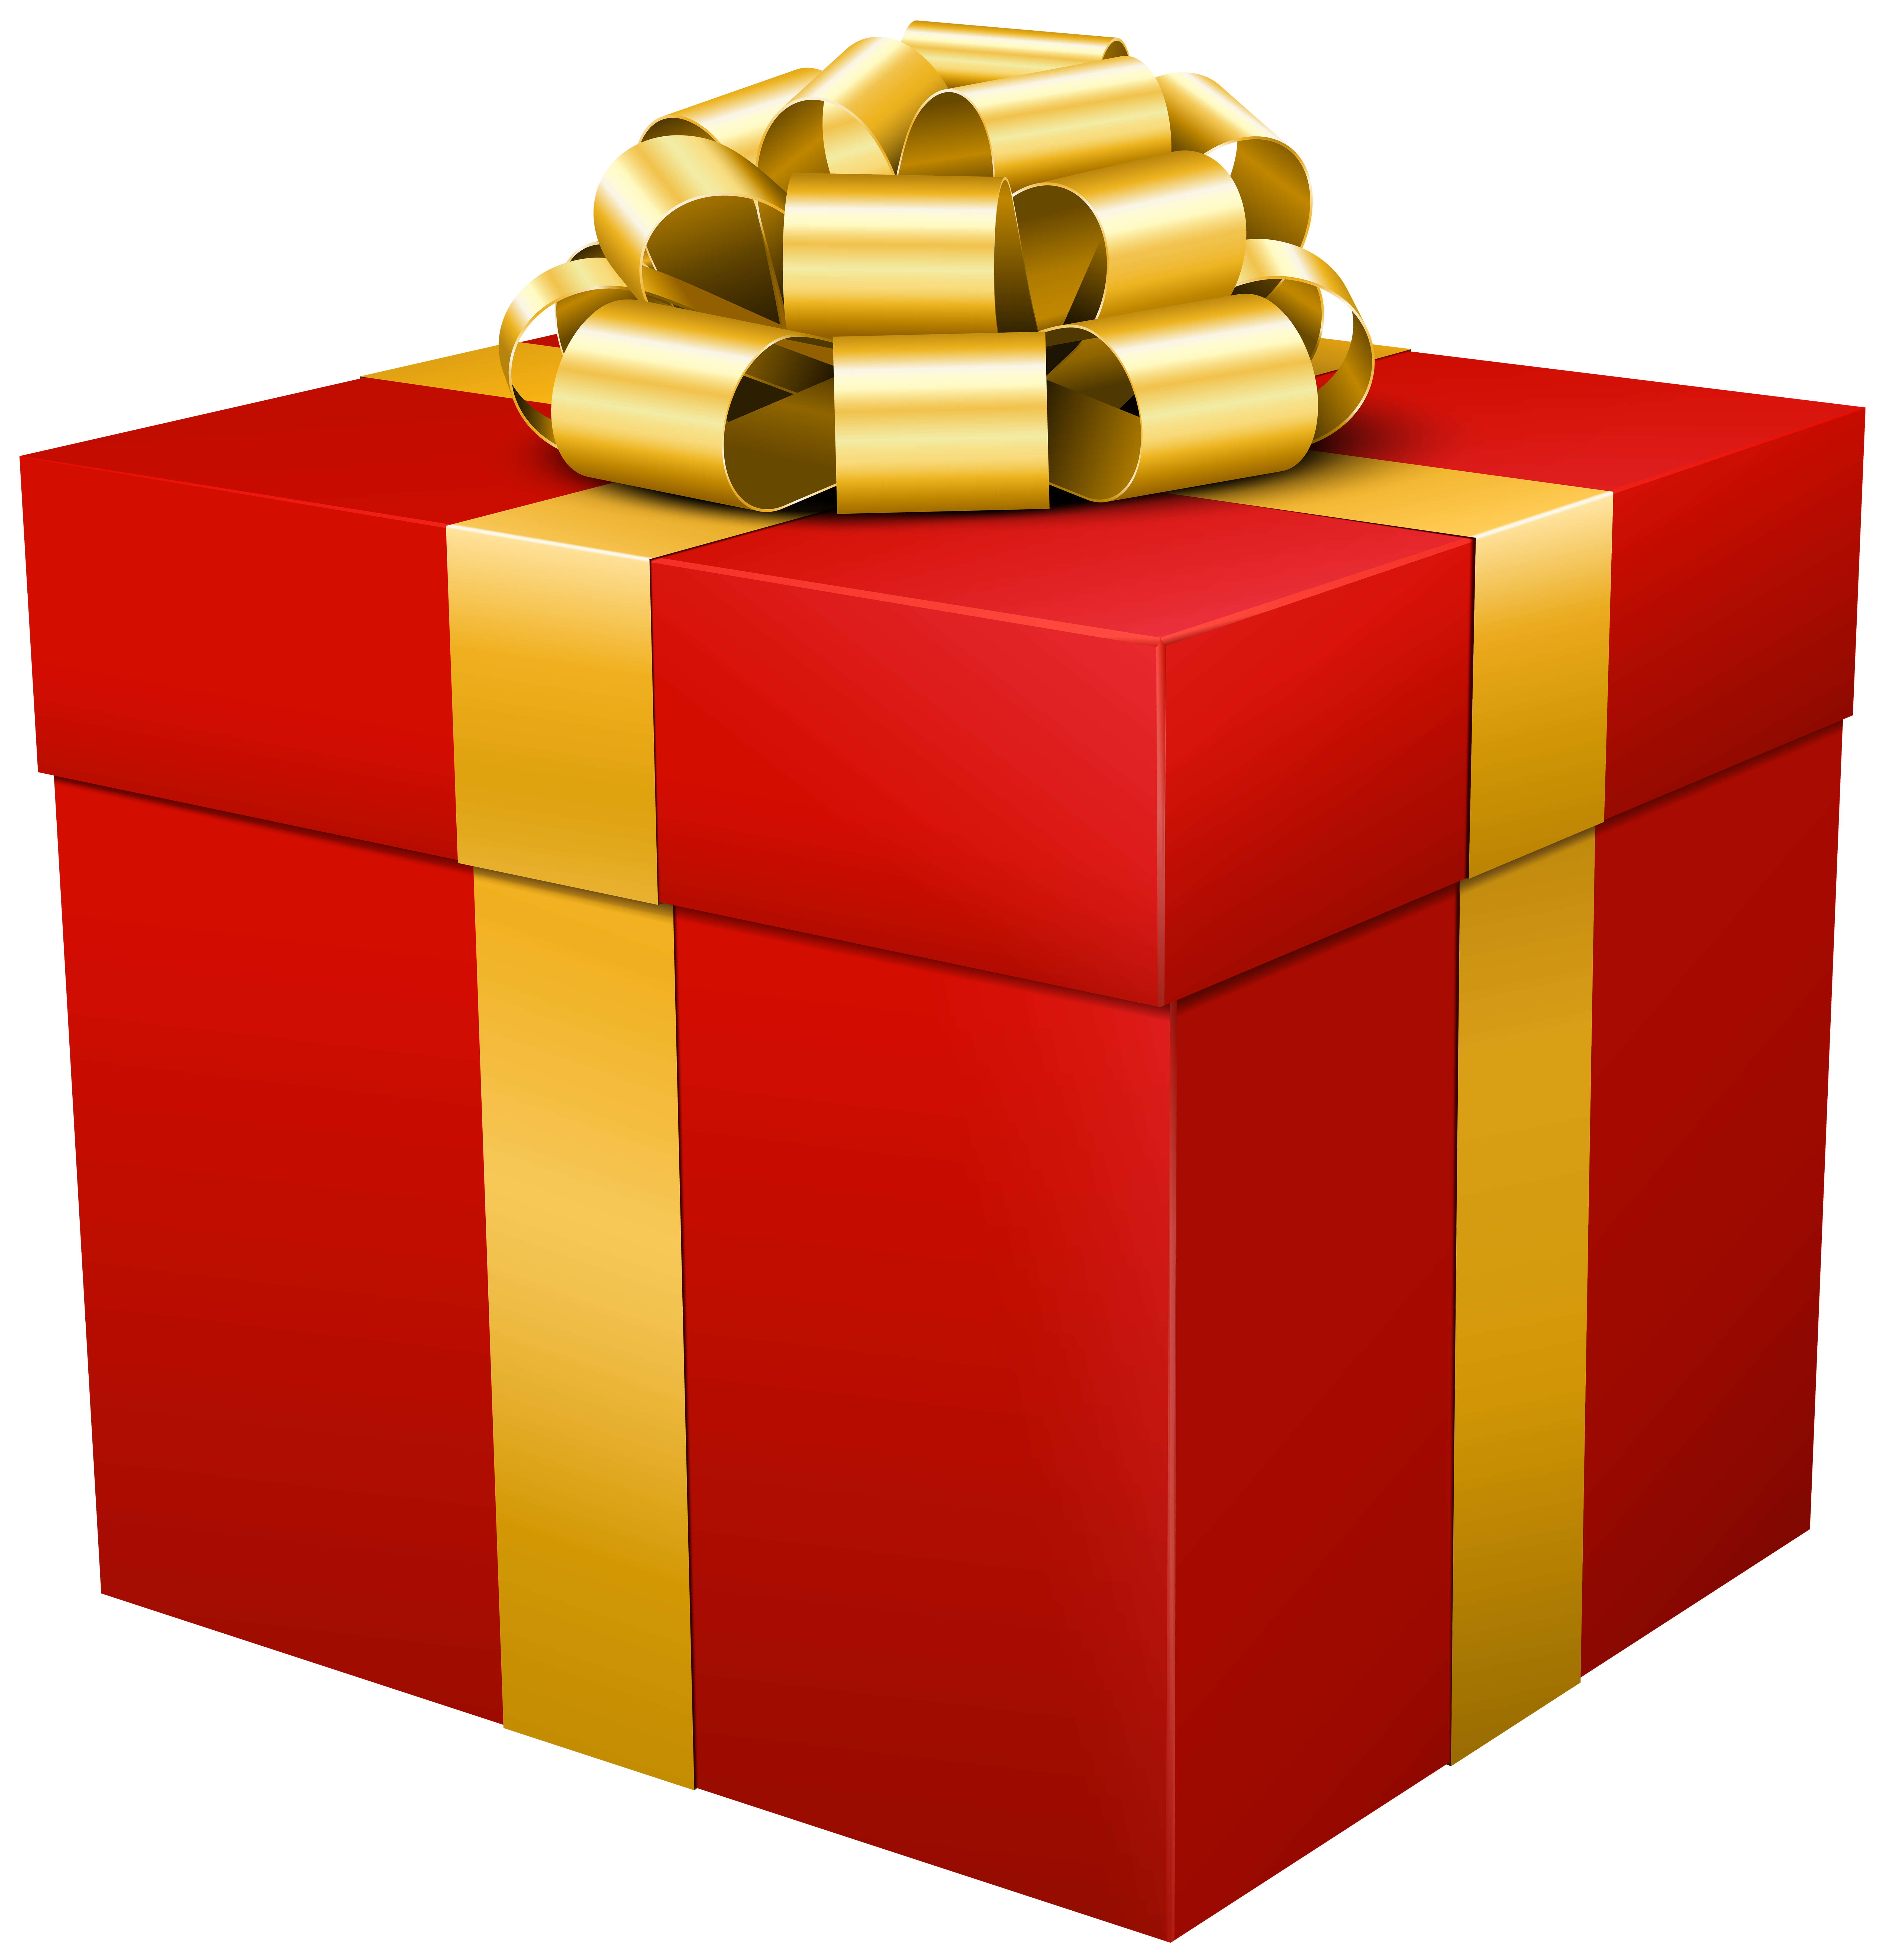 picture free download Red Gift Box Transparent PNG Clip Art Image